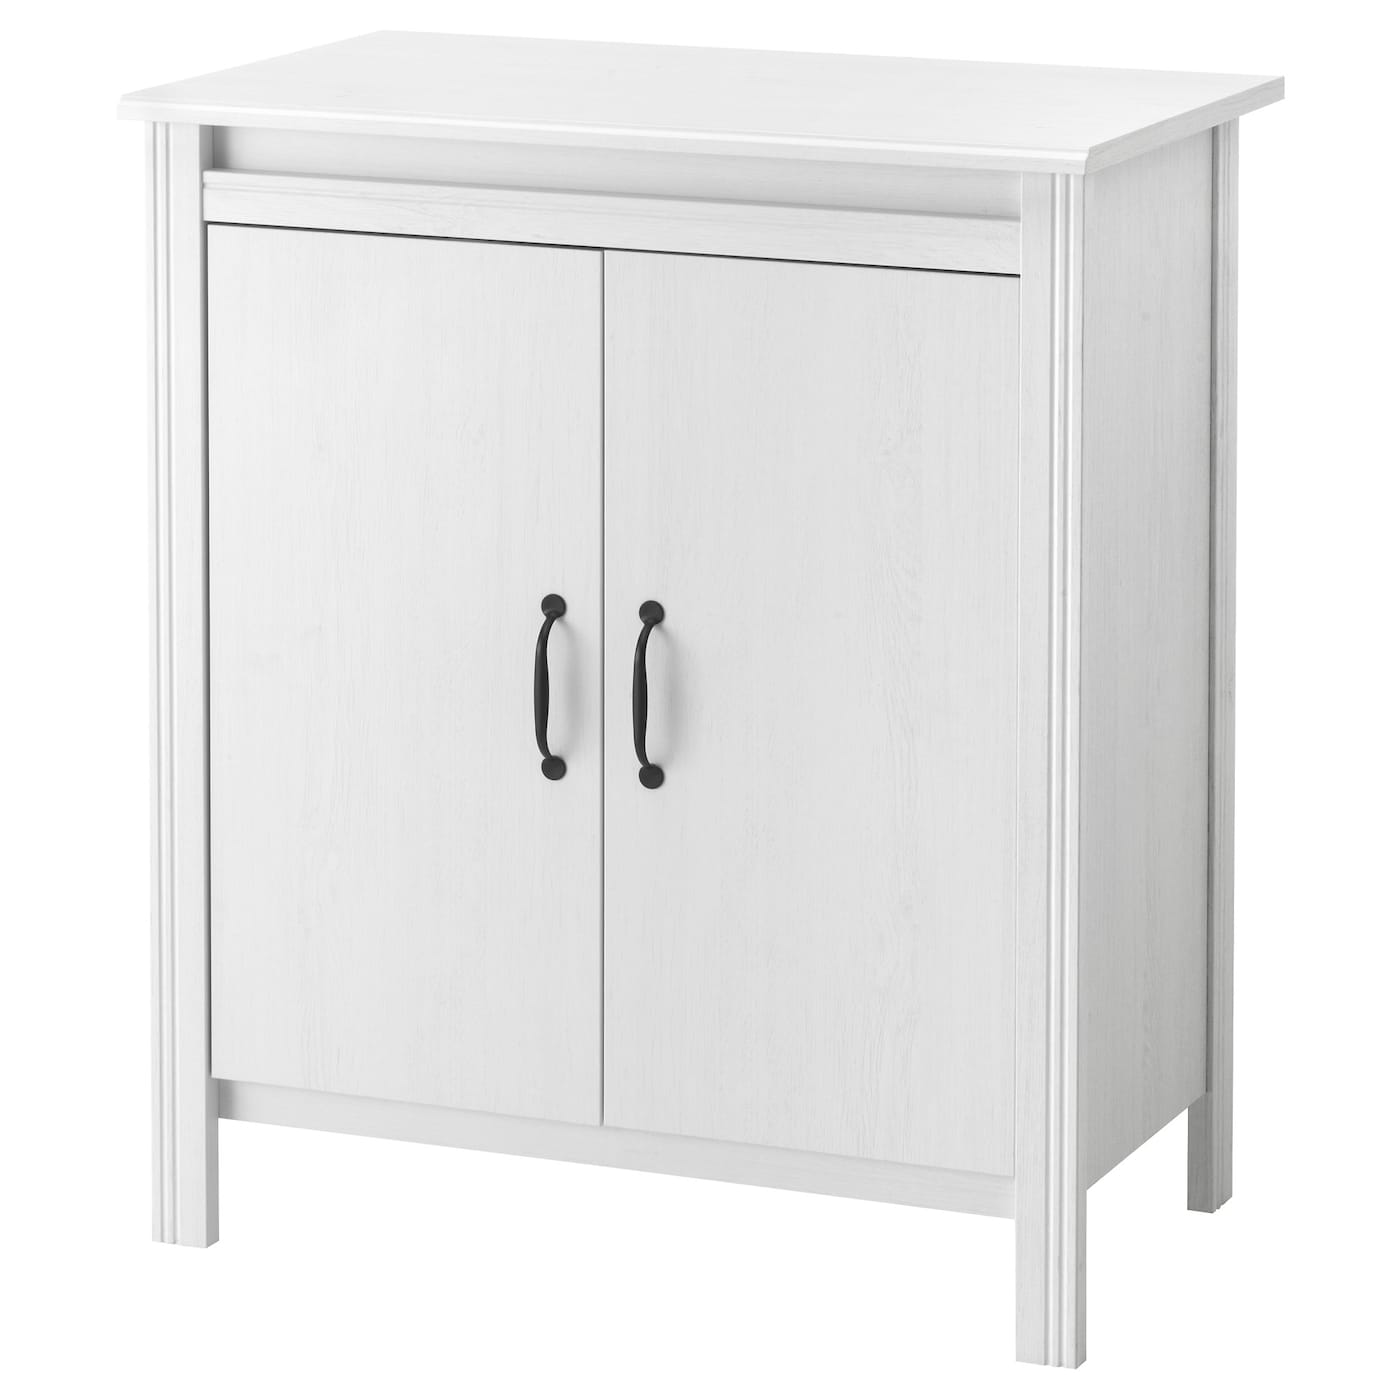 Brusali cabinet with doors white 80x93 cm ikea for Sideboard 40 tief